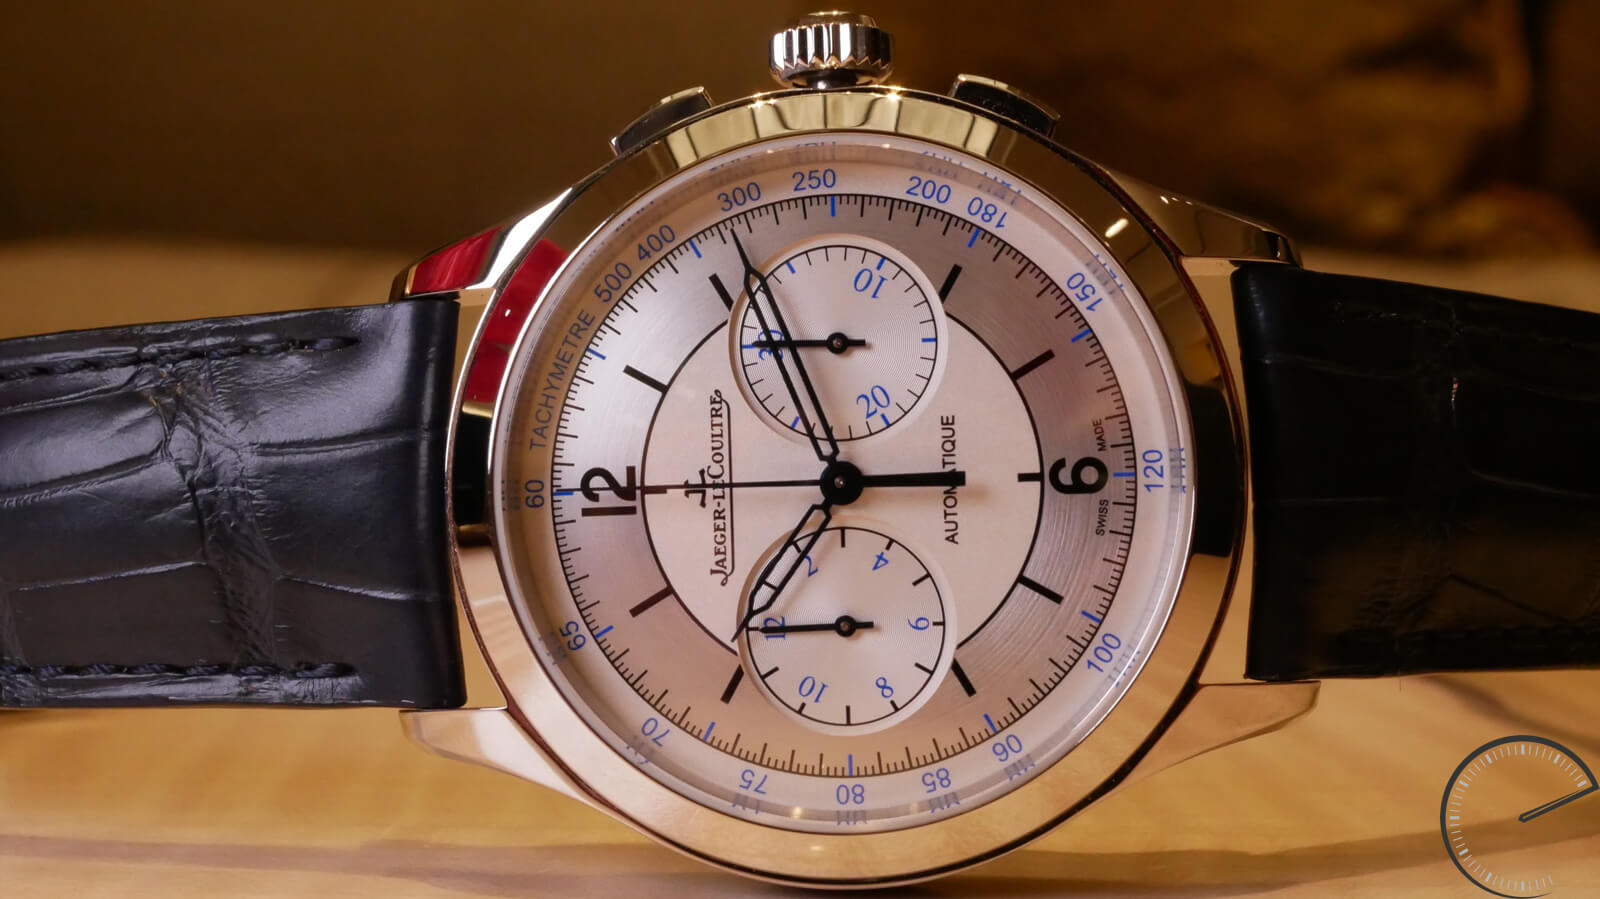 Jaeger-LeCoultre Master Chronograph - timepiece with sector dial